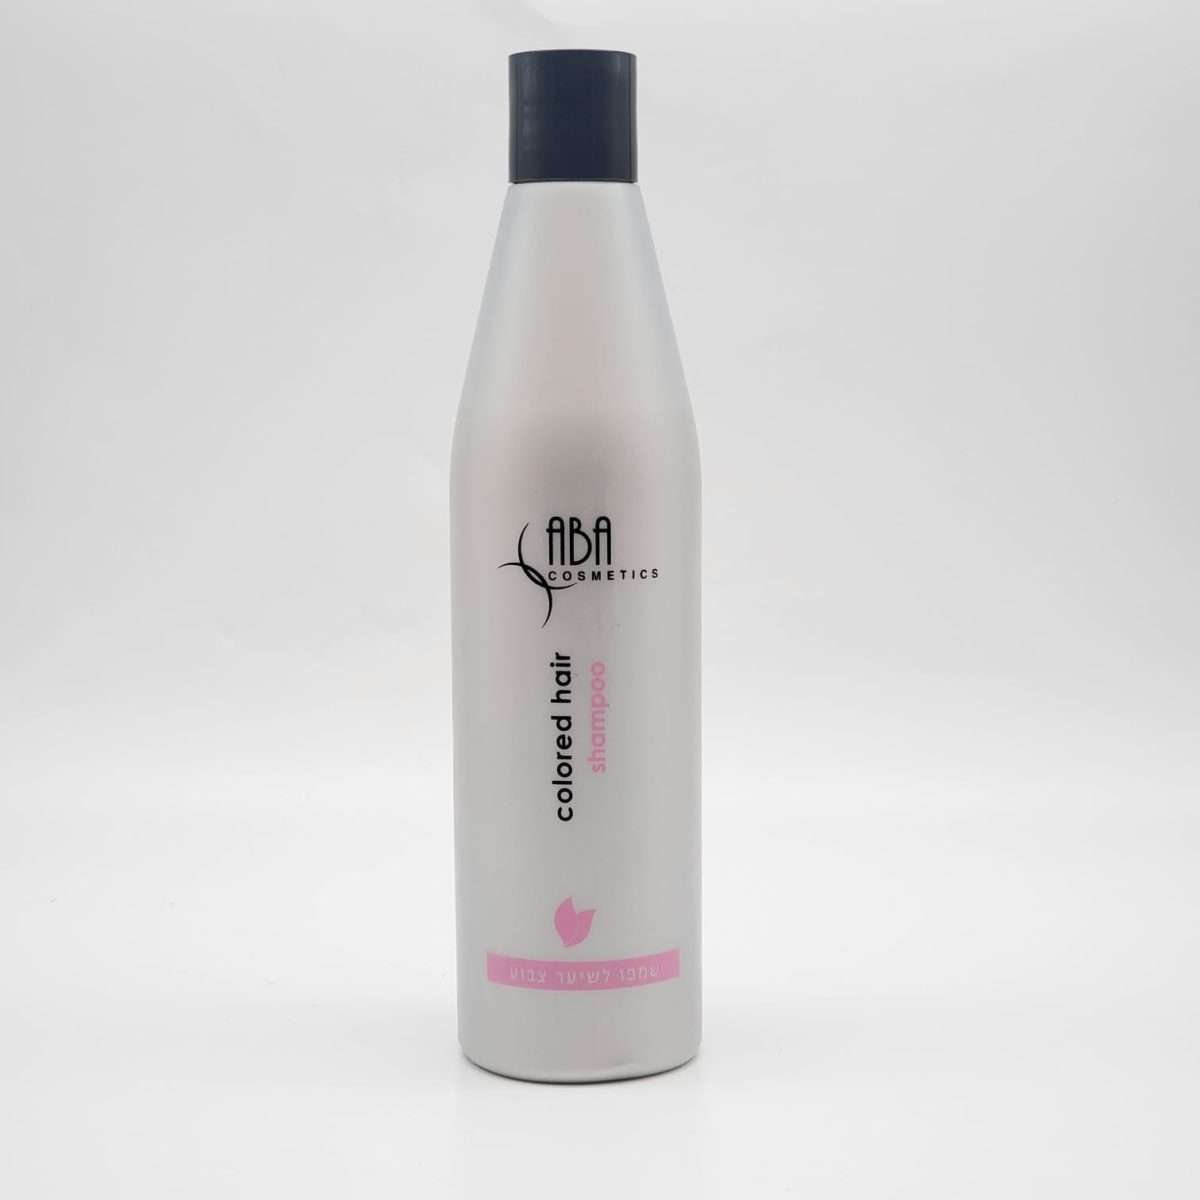 Shampoo for dyed hair